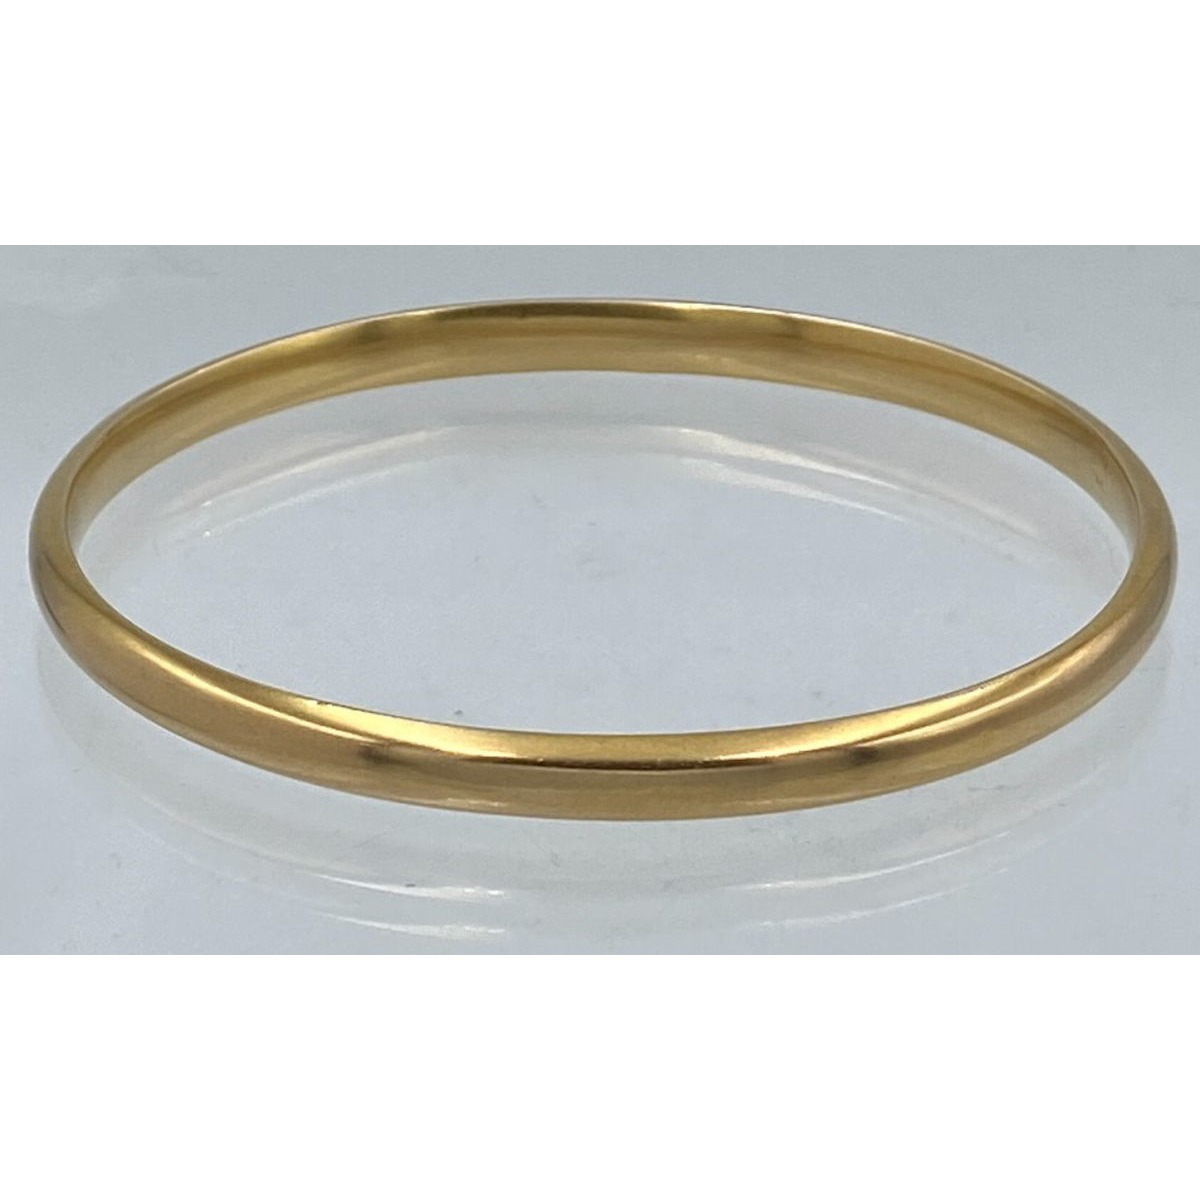 Antique 14 karat Yellow Gold Solid Bangle, Good Weight